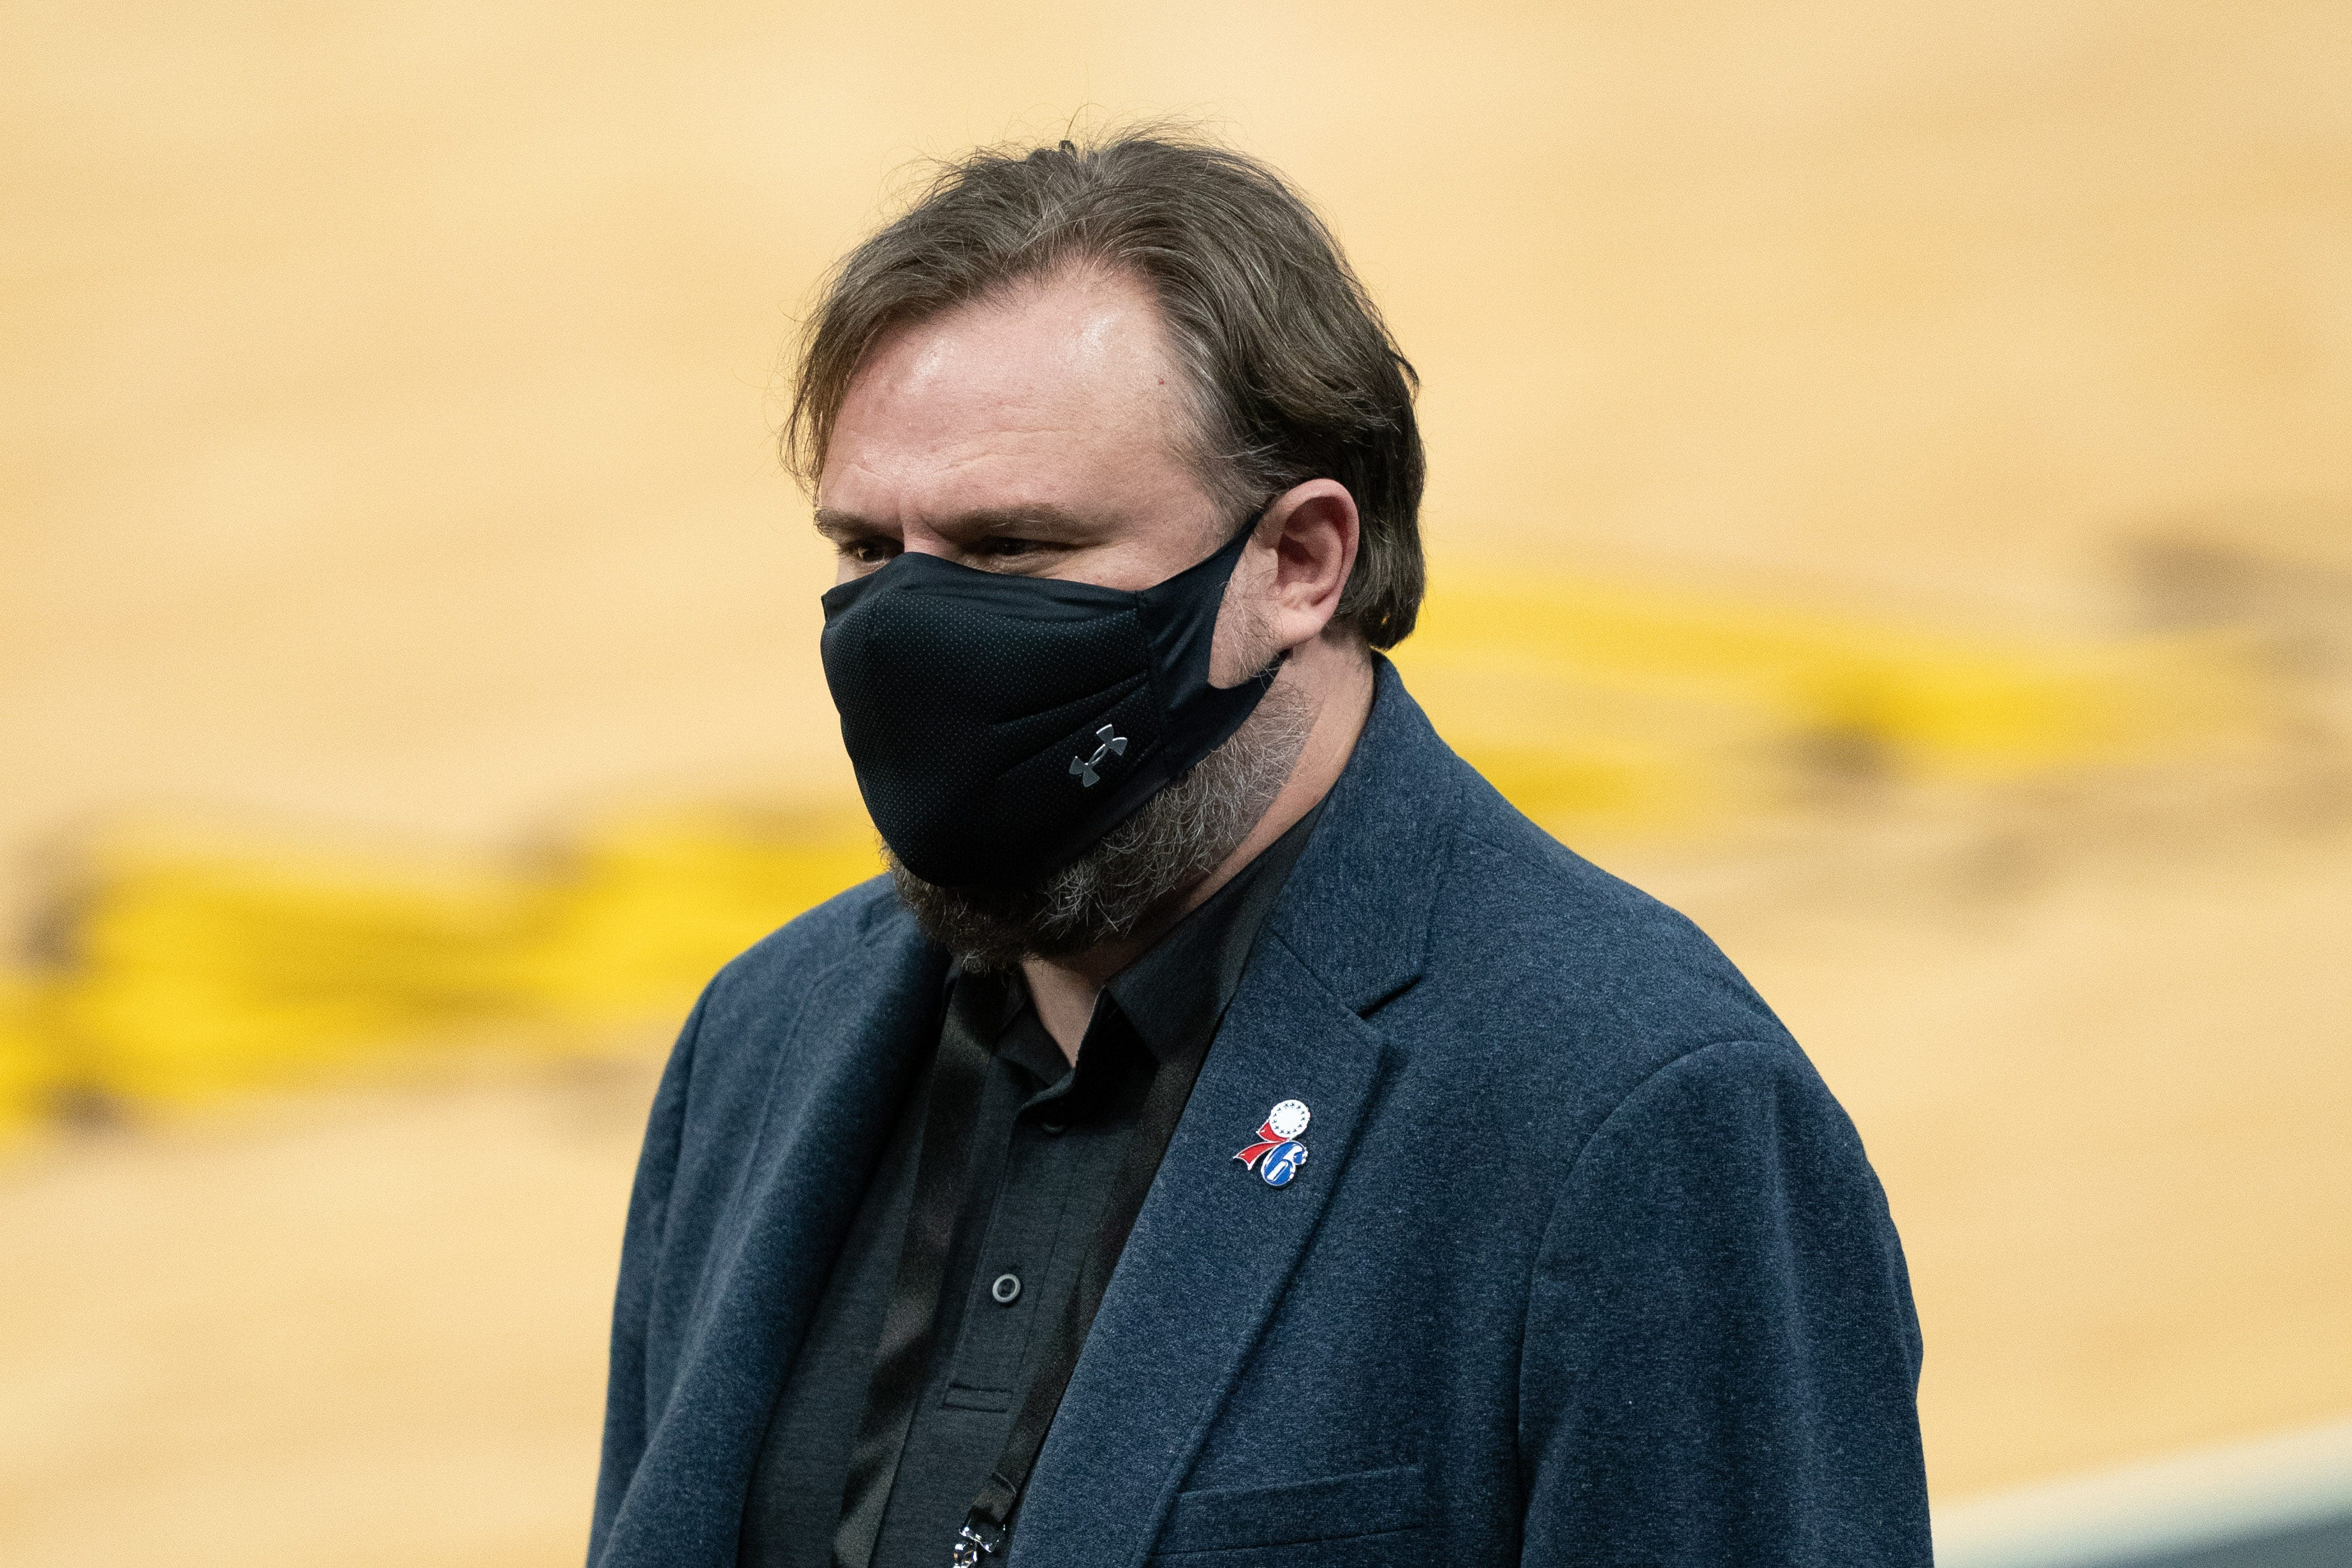 Philadelphia 76ers executive Daryl Morey fined $75,000 for violating NBA s anti-tampering rule